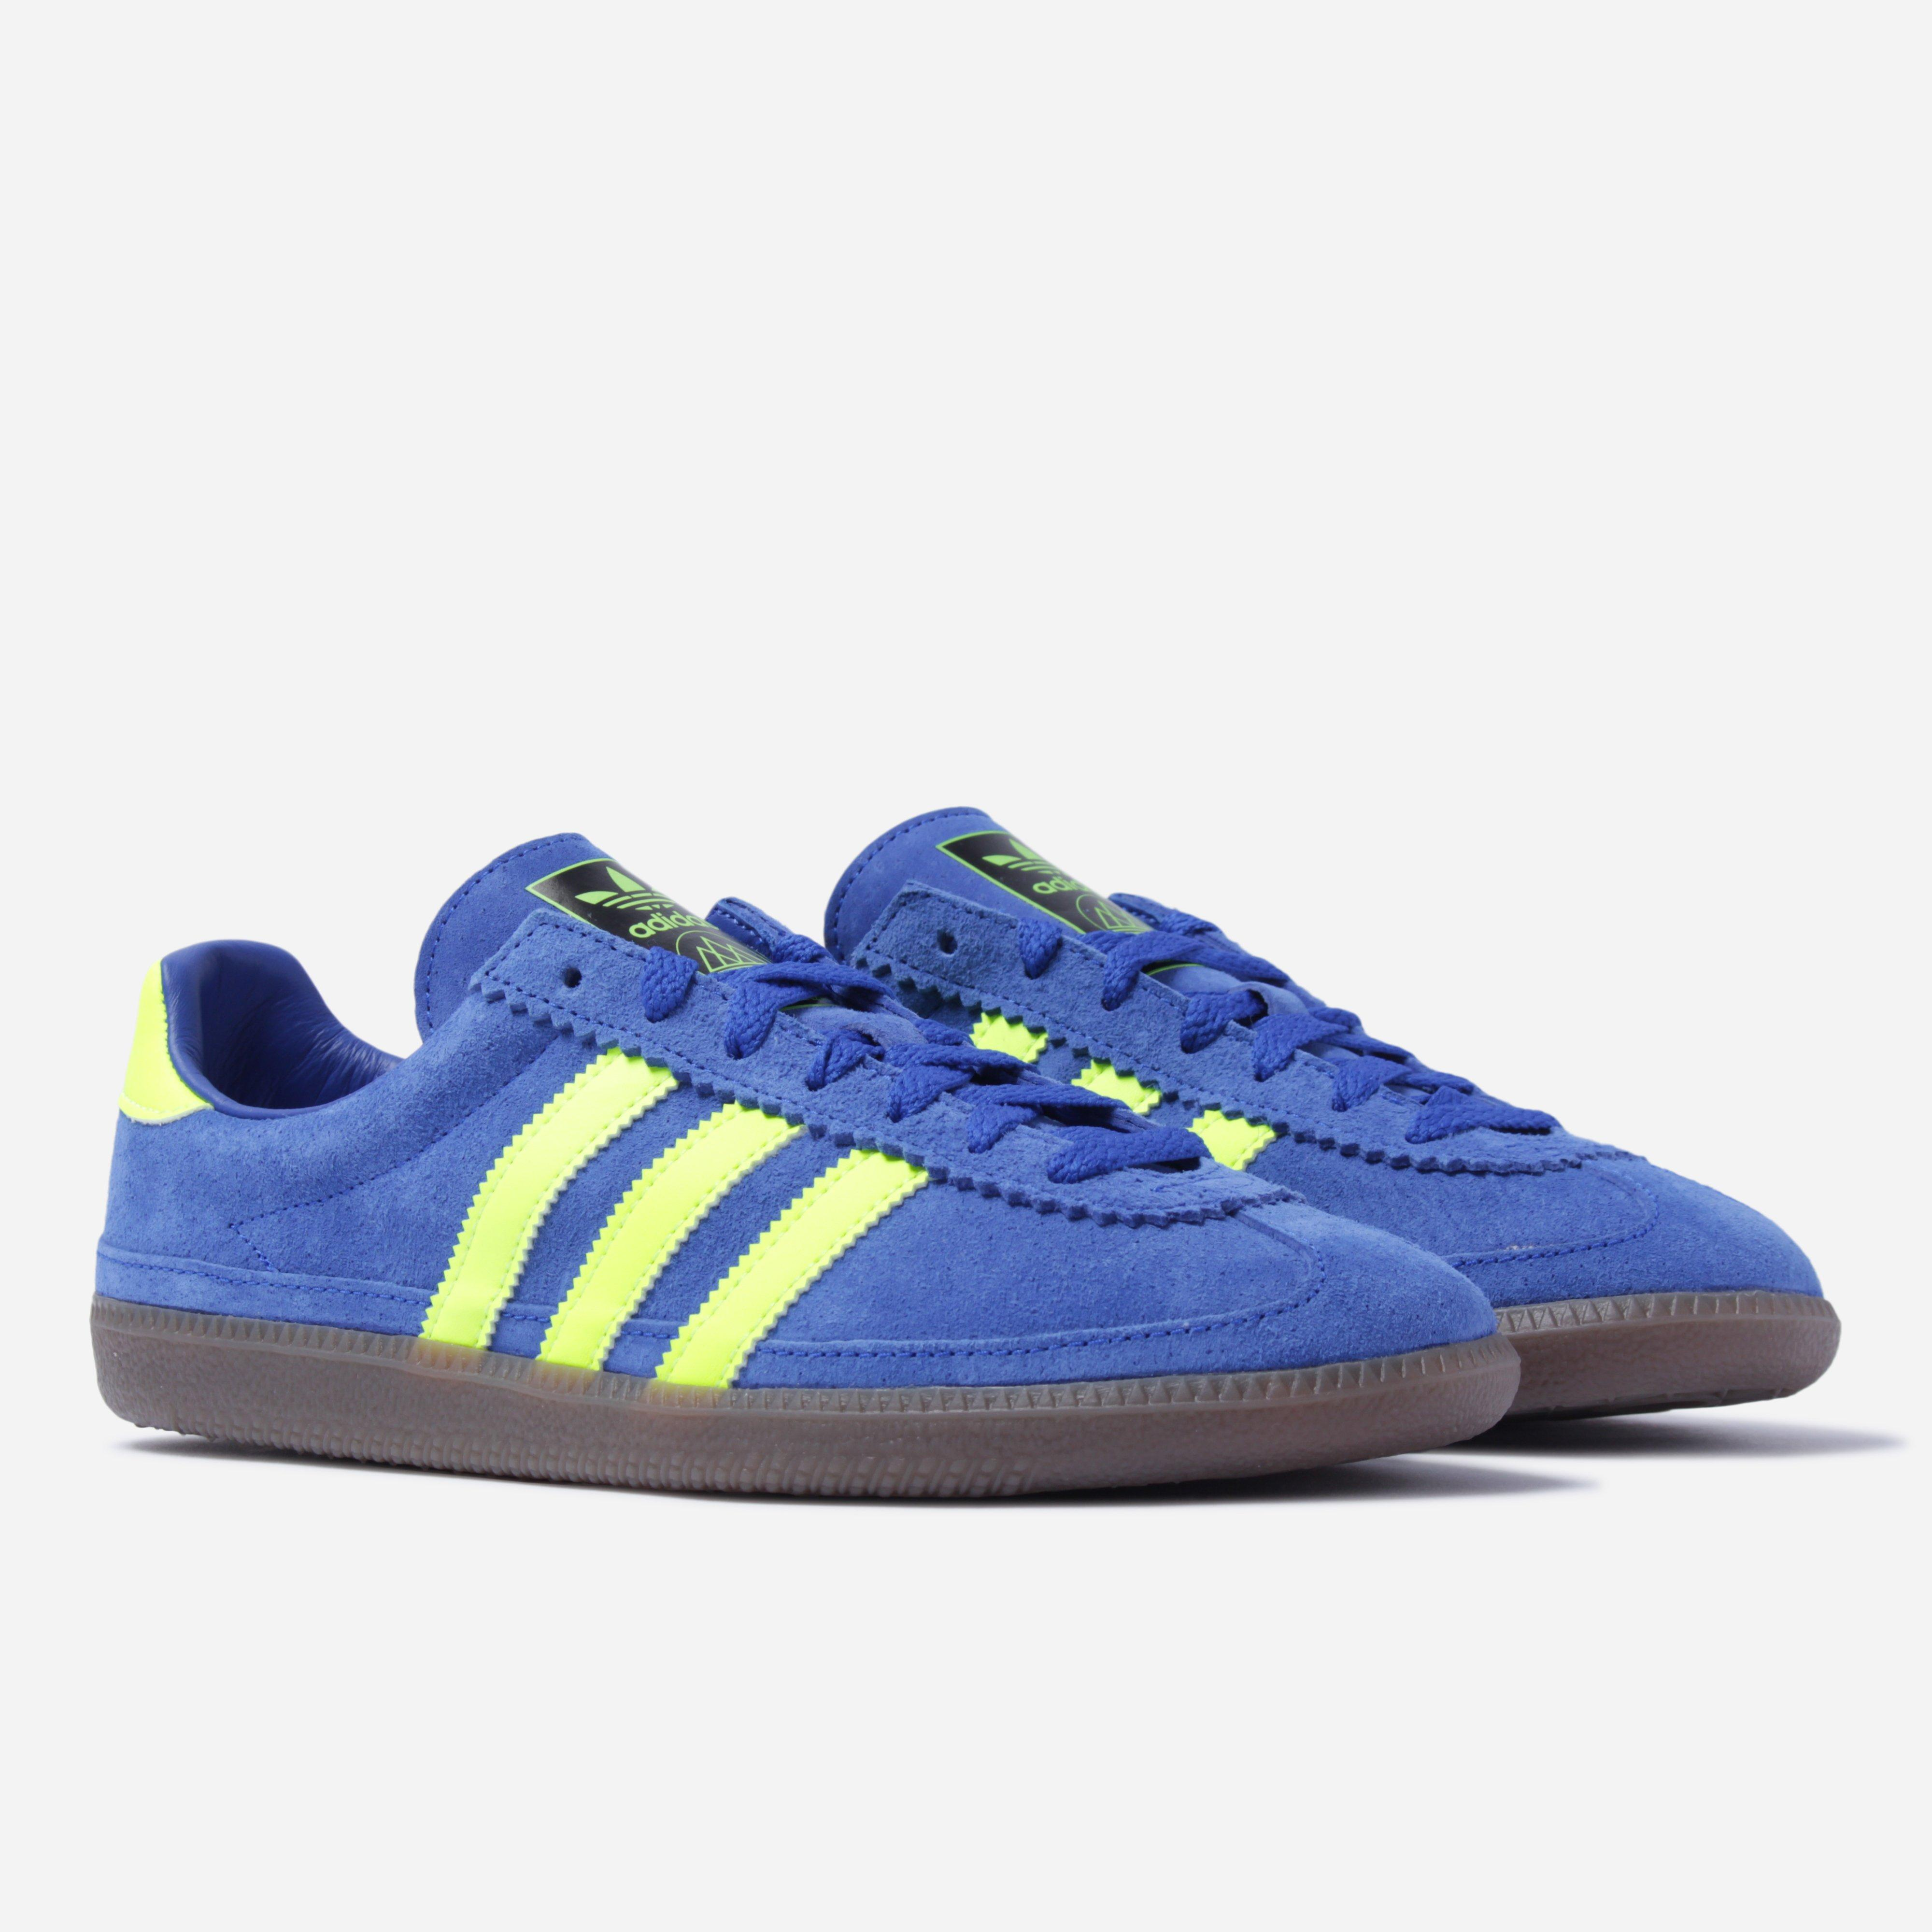 20a300ac22 adidas Originals Whalley Spzl in Blue for Men - Lyst